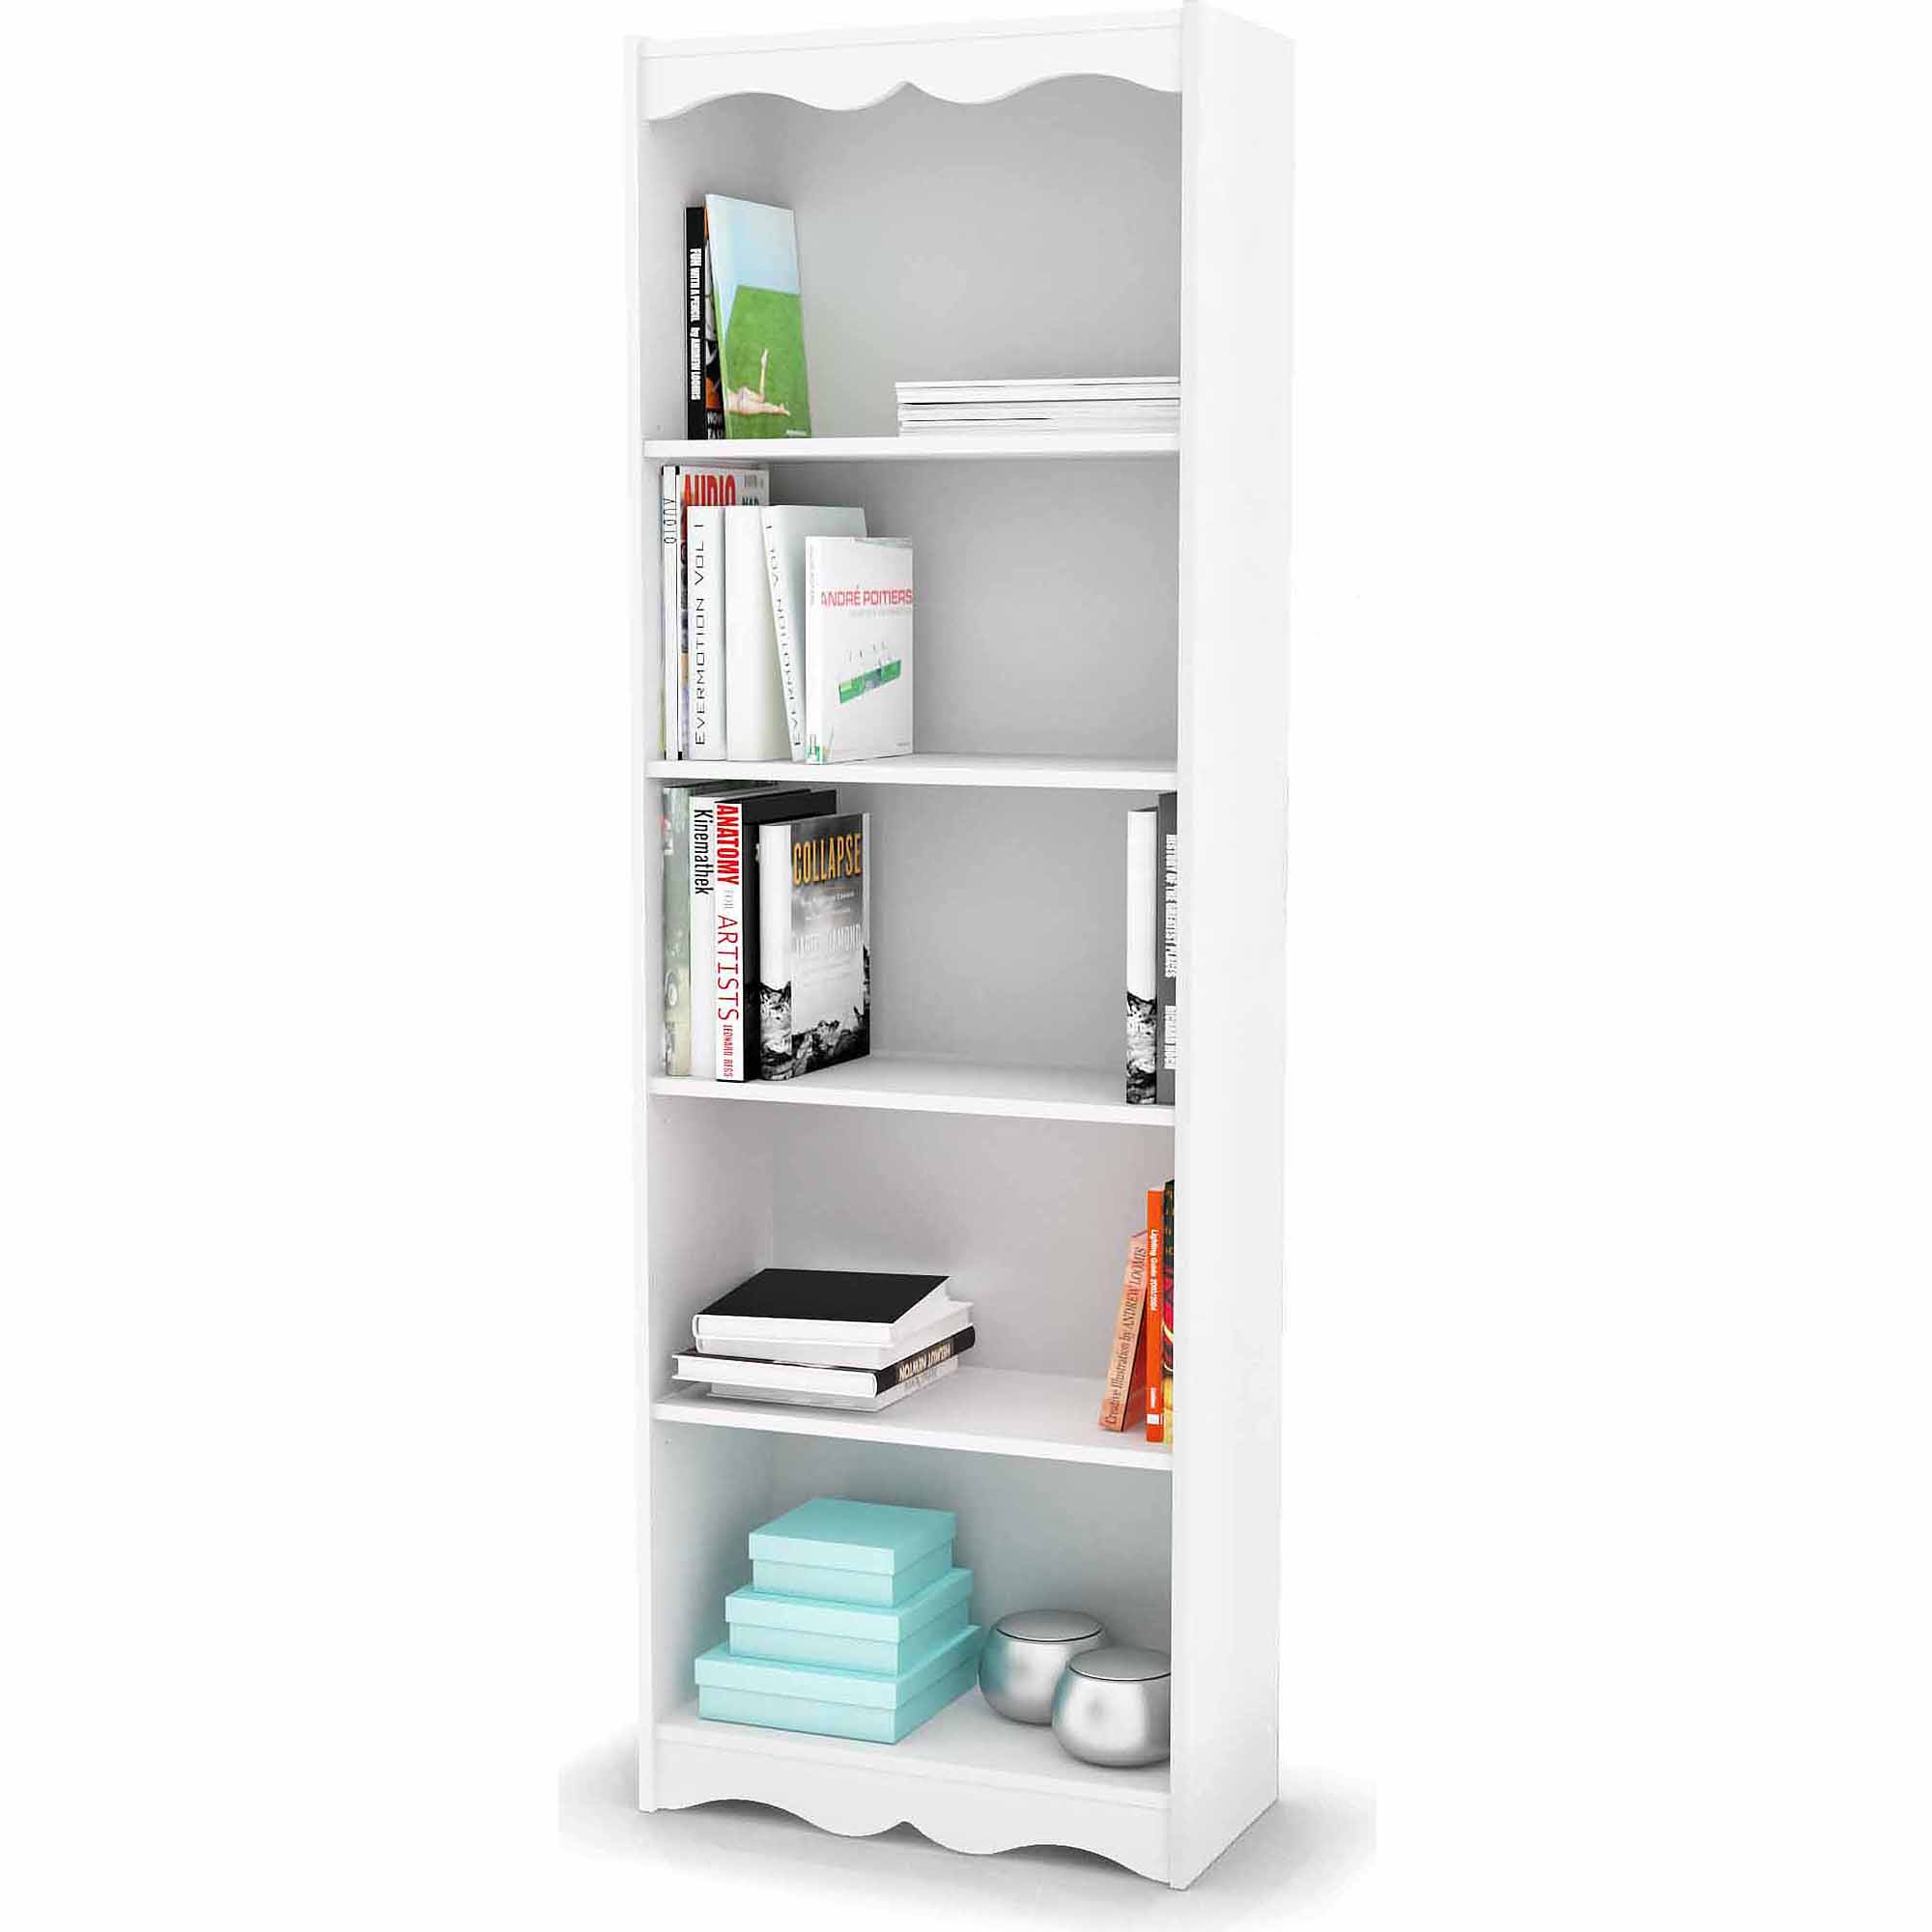 SONAX Hawthorn 72in Tall Bookcase Frost White Bookcases